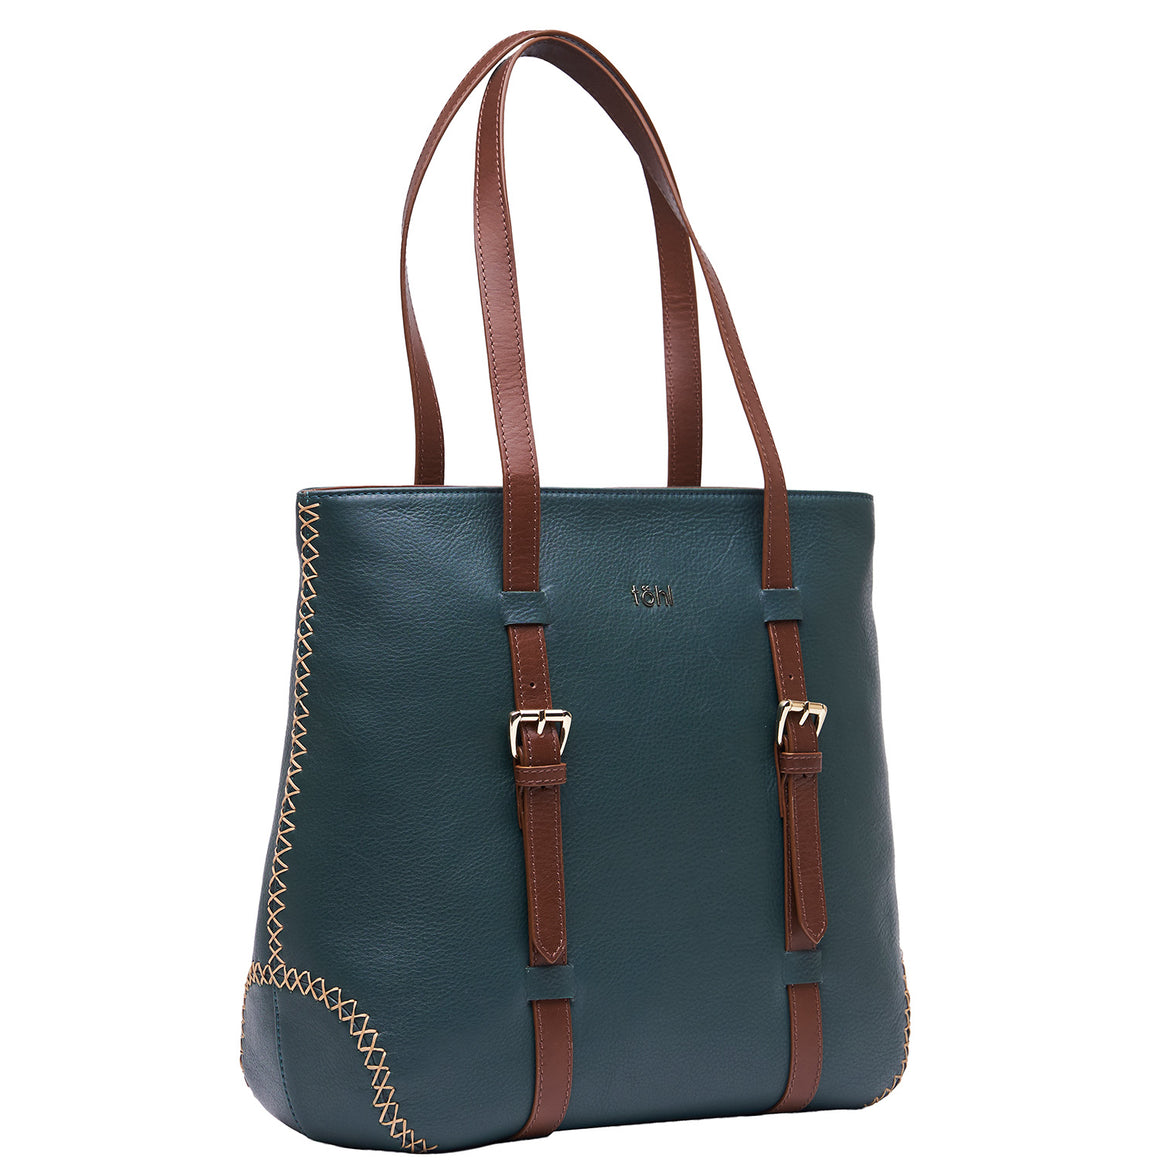 TT 0008 - TOHL RADNOR WOMEN'S TOTE BAG - FOREST GREEN